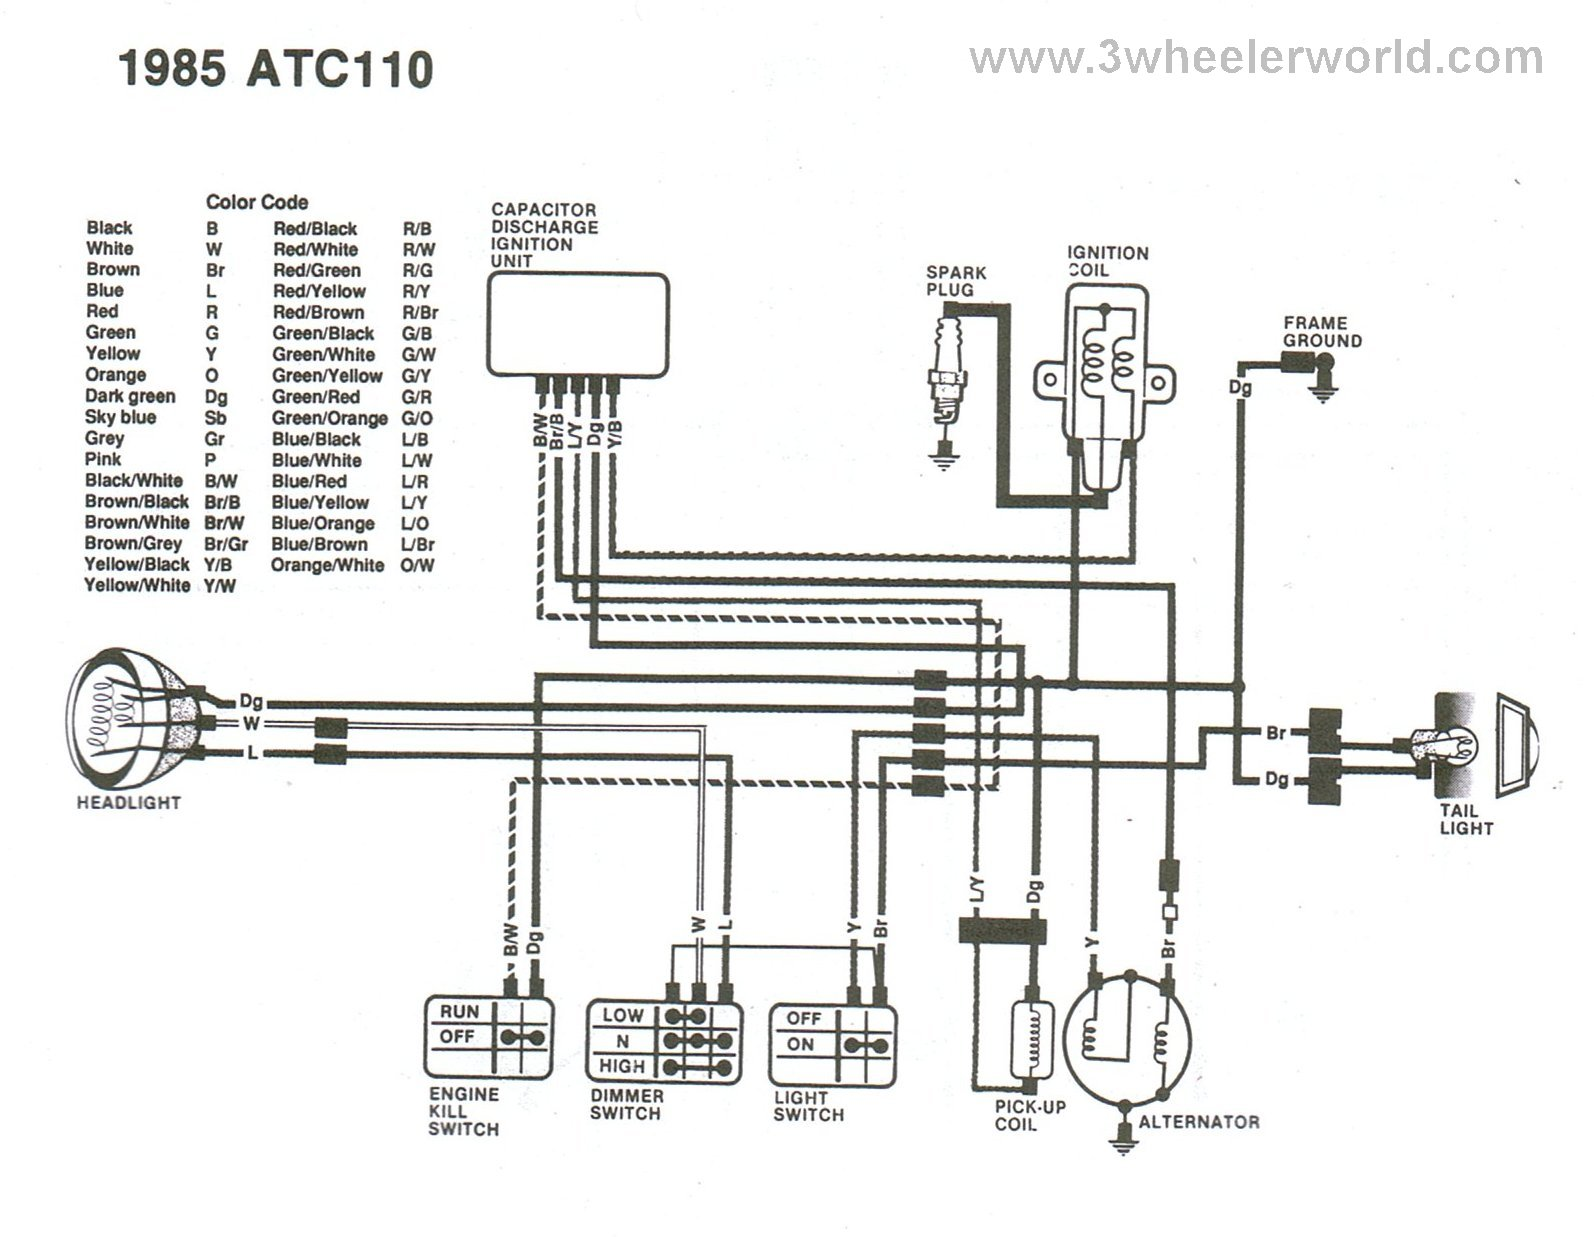 [DHAV_9290]  3 WHeeLeR WoRLD-Tech Help Honda Wiring Diagrams | Honda 4 Wheeler Wiring Schematic |  | 3WHeeLeR WoRLD